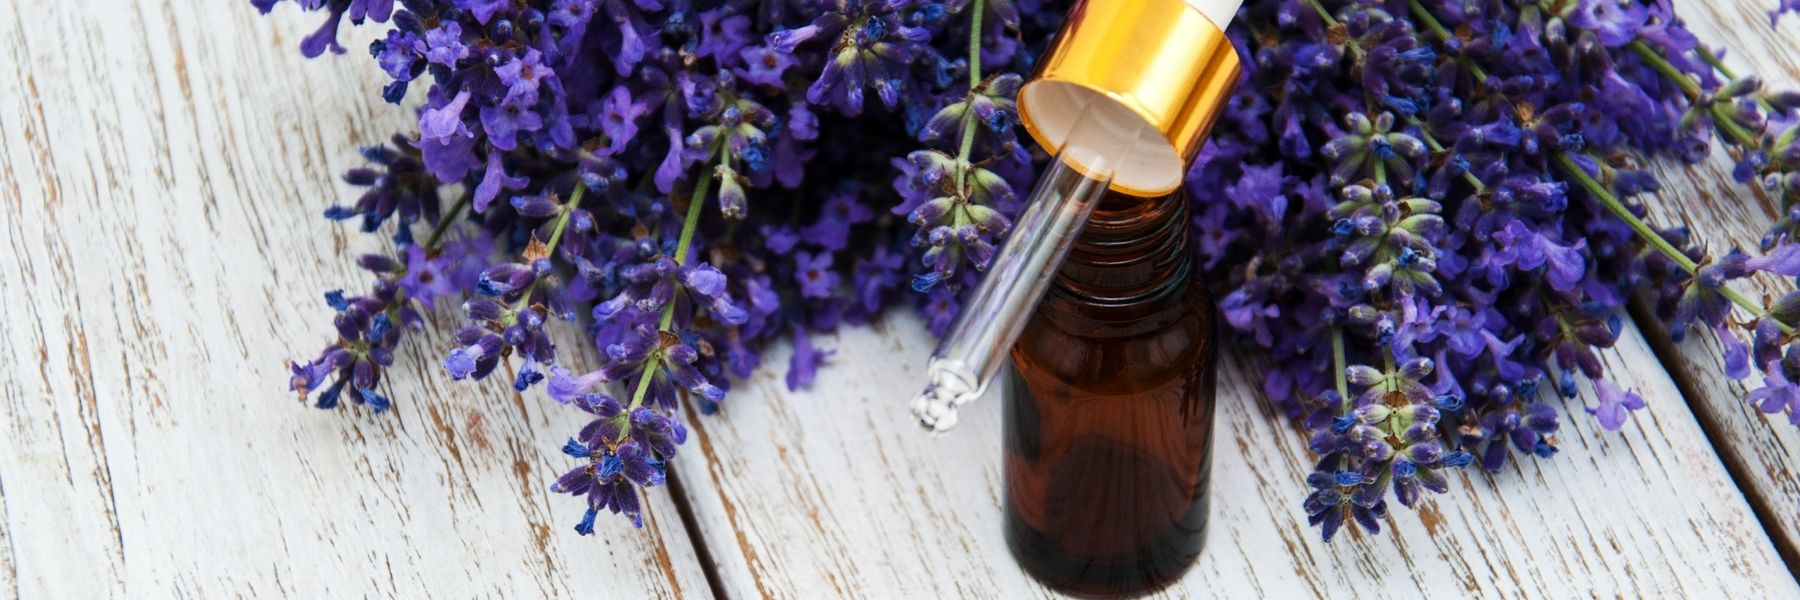 amber glass essential oil bottle with gold and glass dropper with fresh lavender flowers Wild Planet Aromatherapy blog